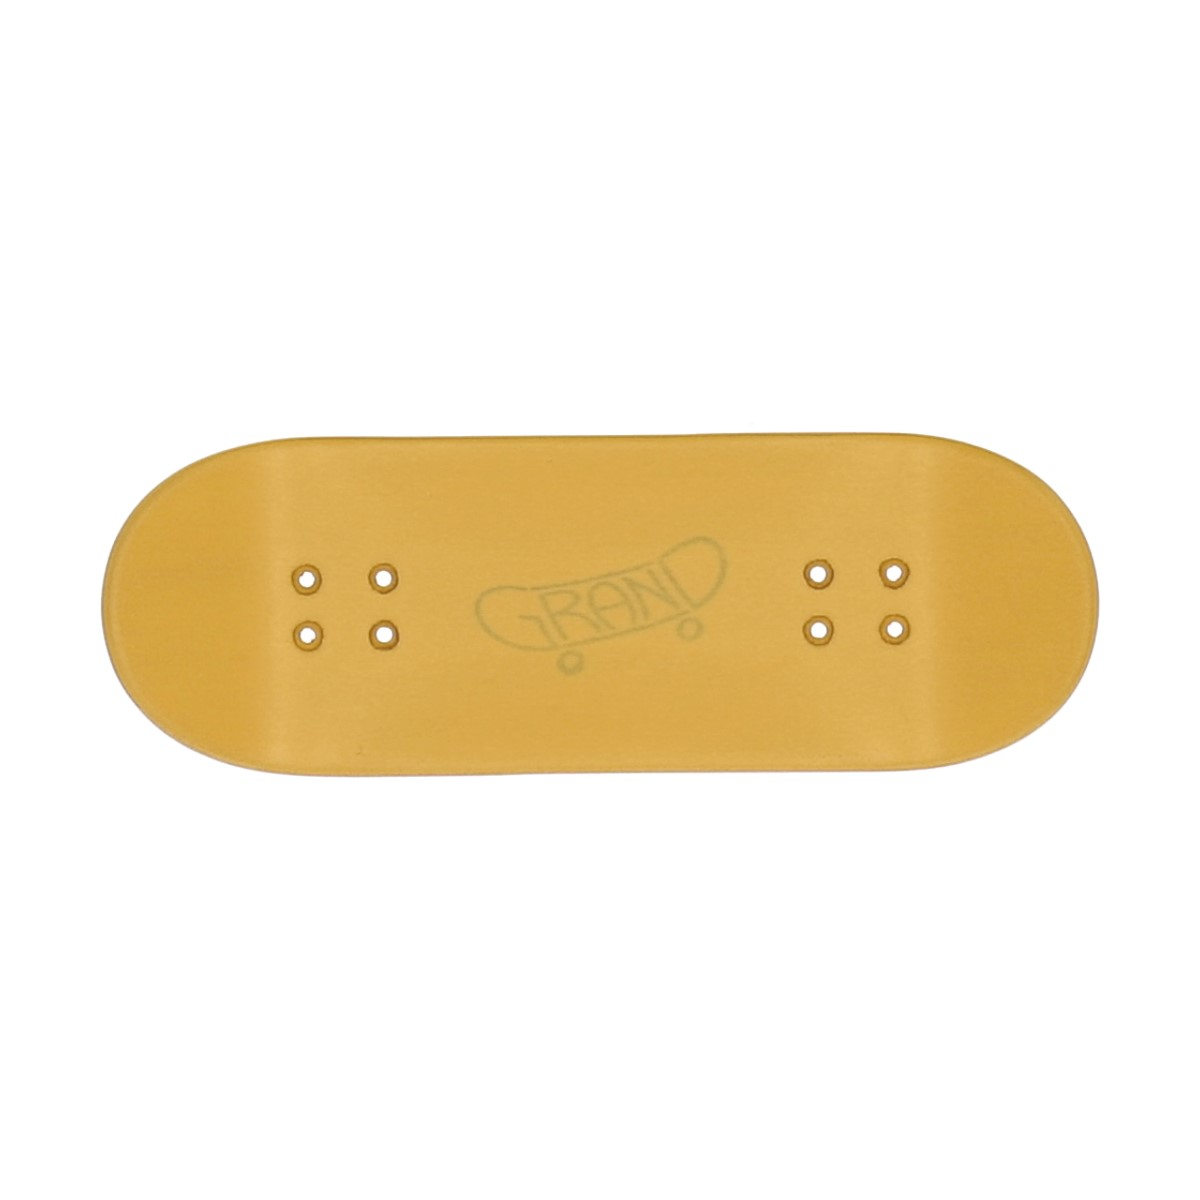 Deck Grand Fingers Full Color Yellow